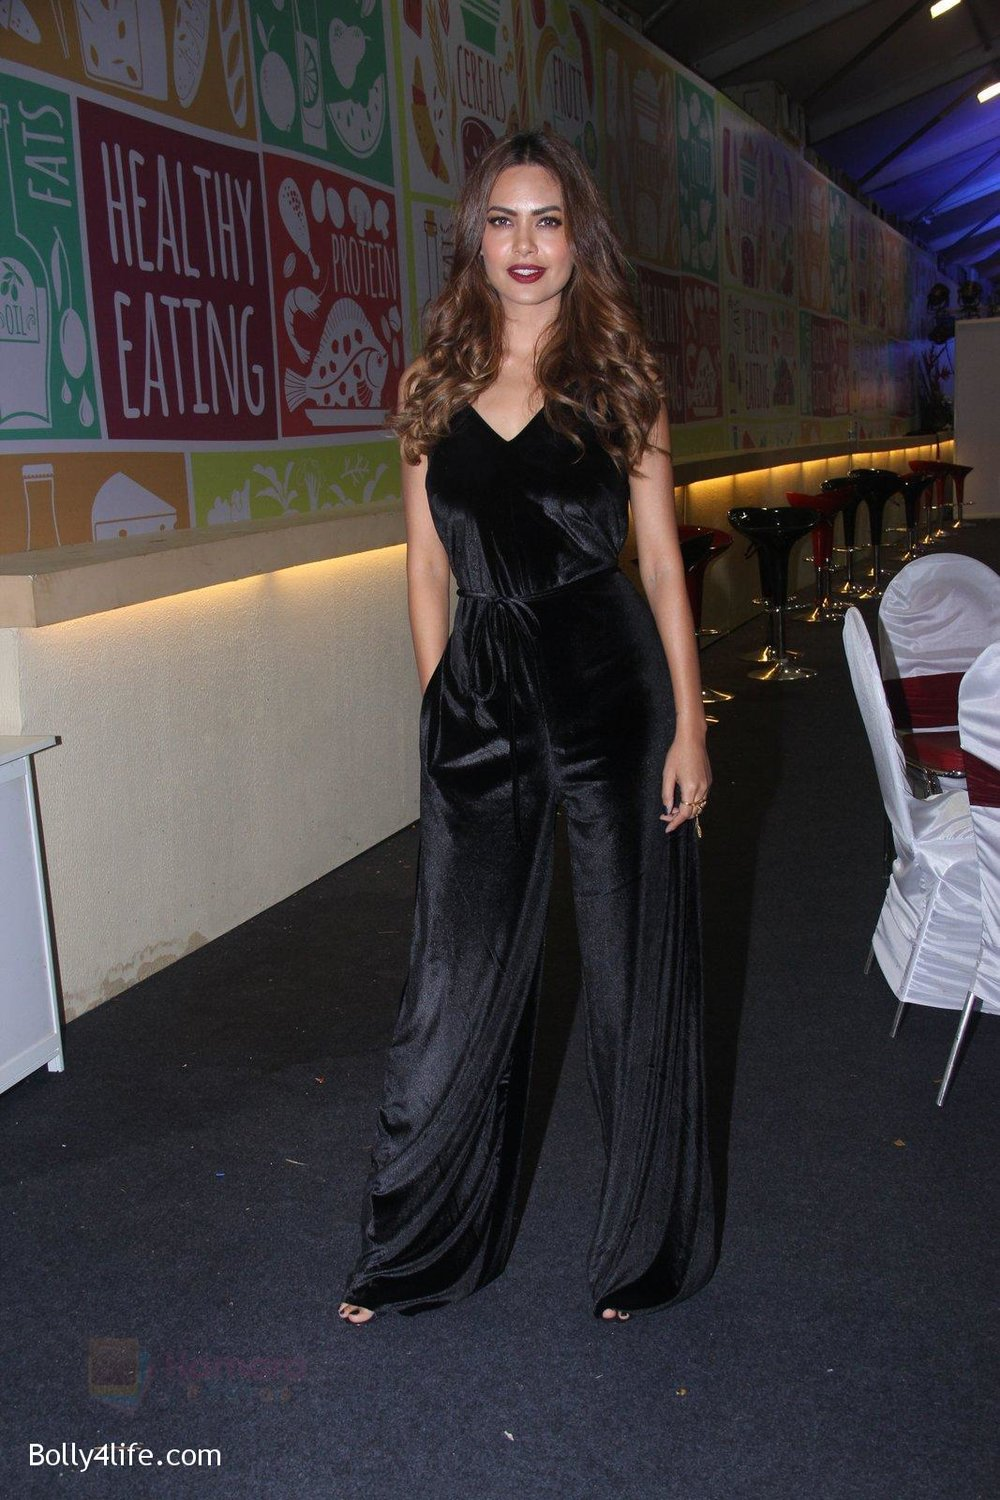 Esha-Gupta-at-Times-Property-event-on-8th-Oct-2016-1.jpg